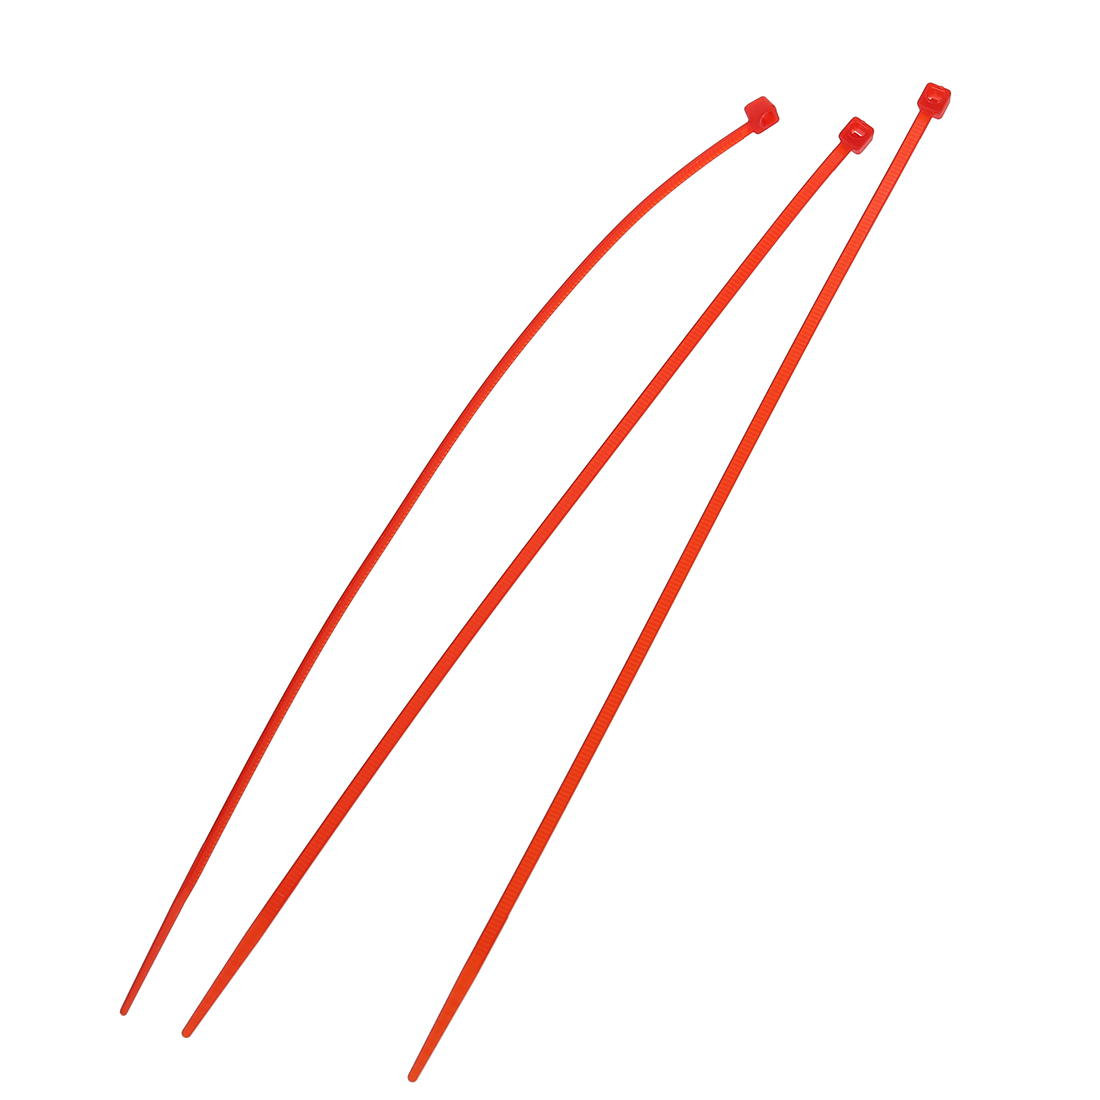 100 x 3 mm x 200 mm Red patch clamp stop cable wire tie -in Cable ...